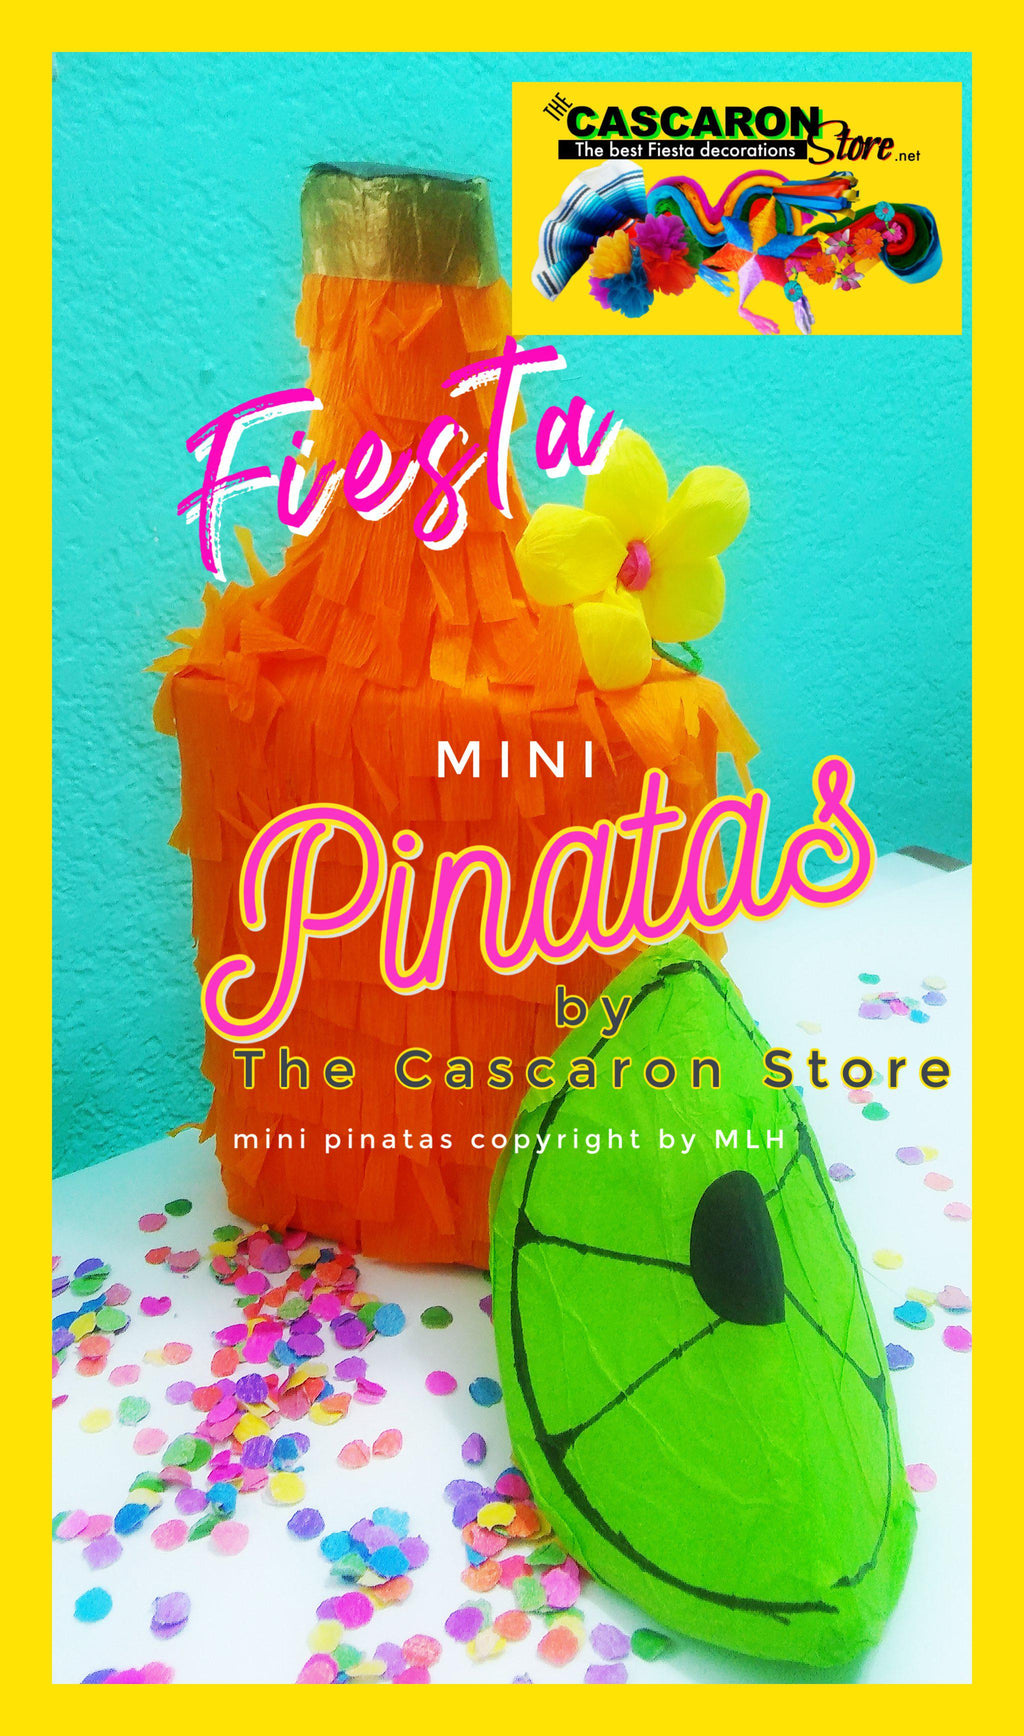 Fiesta Bottle Decoration Mini Pinata Fiesta Bottle Decoration Mini Pinata - Fiesta Arts DesignsMini Pinata